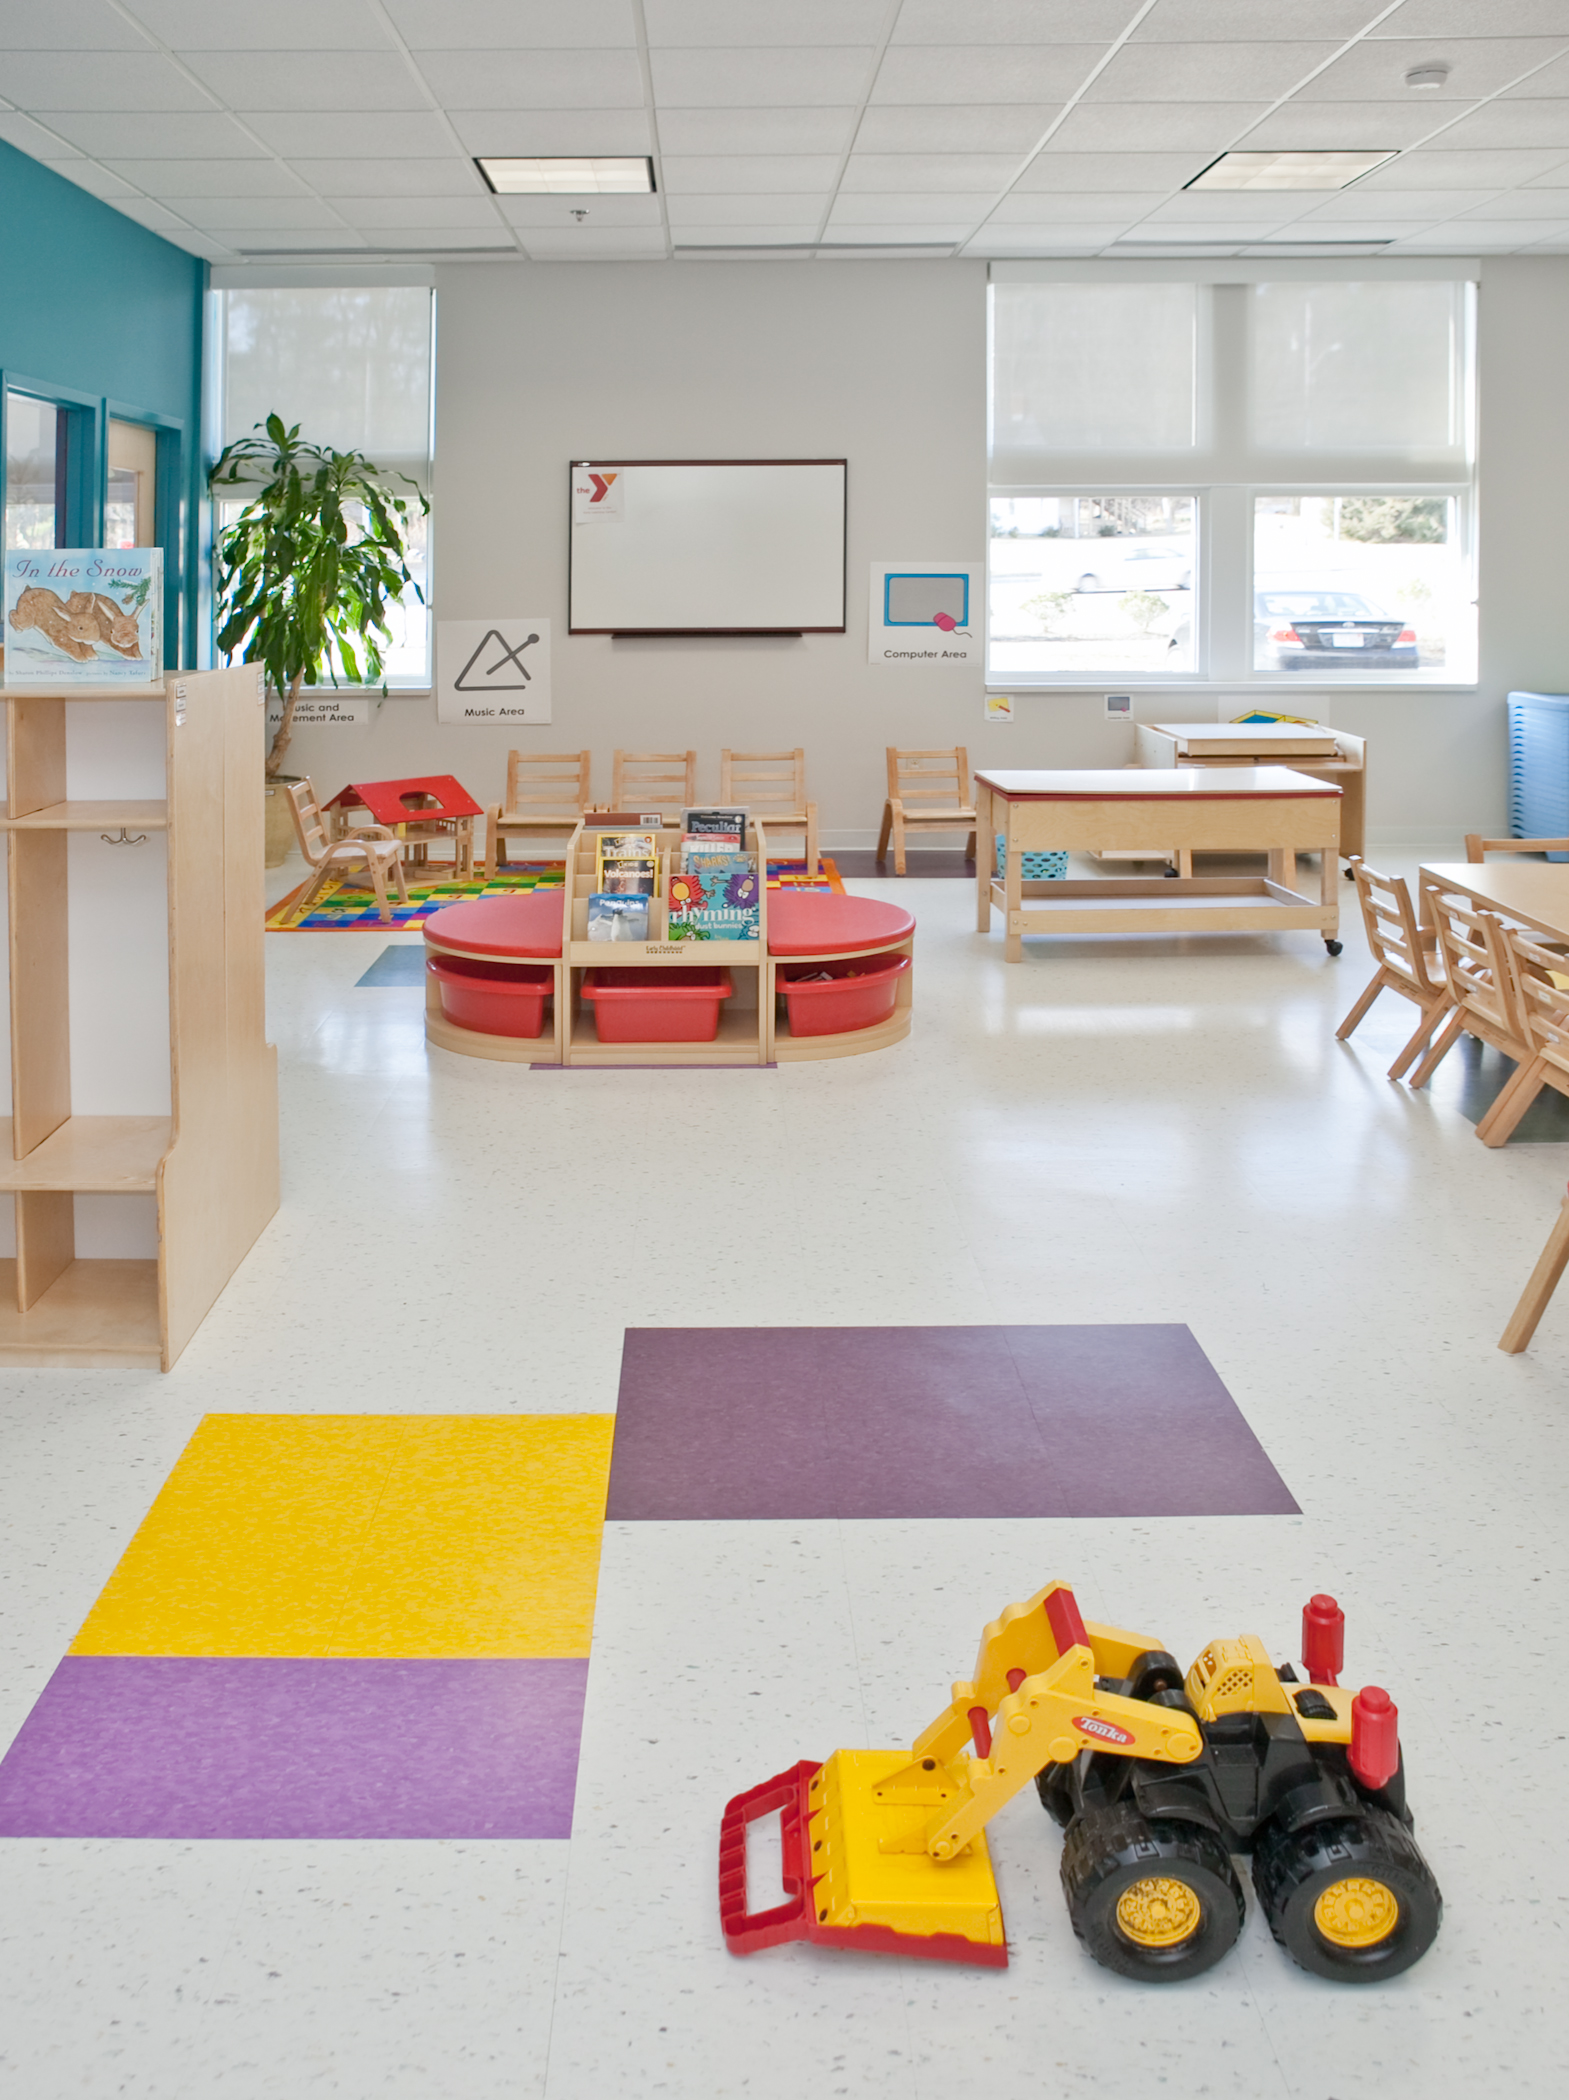 YMCA - EARLY LEARNING CENTER